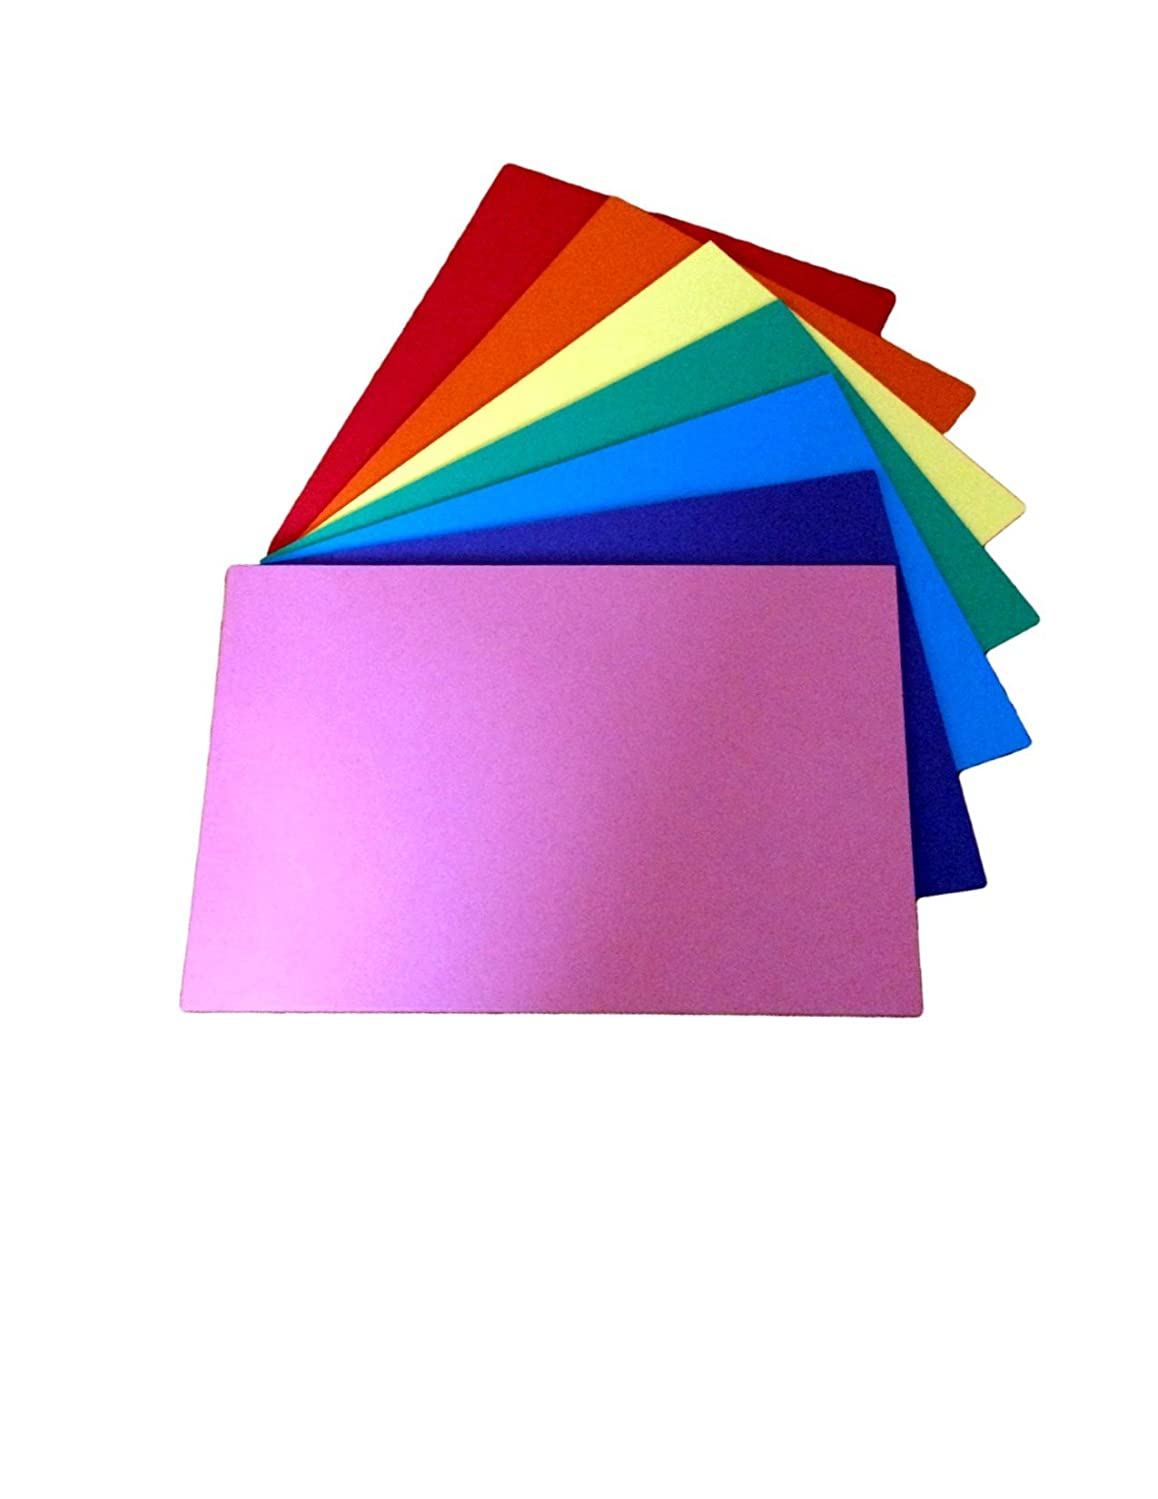 House of Card and Paper Rainbow A4 160 GSM Coloured Card (Pack of 50) ulitllvclagwyt